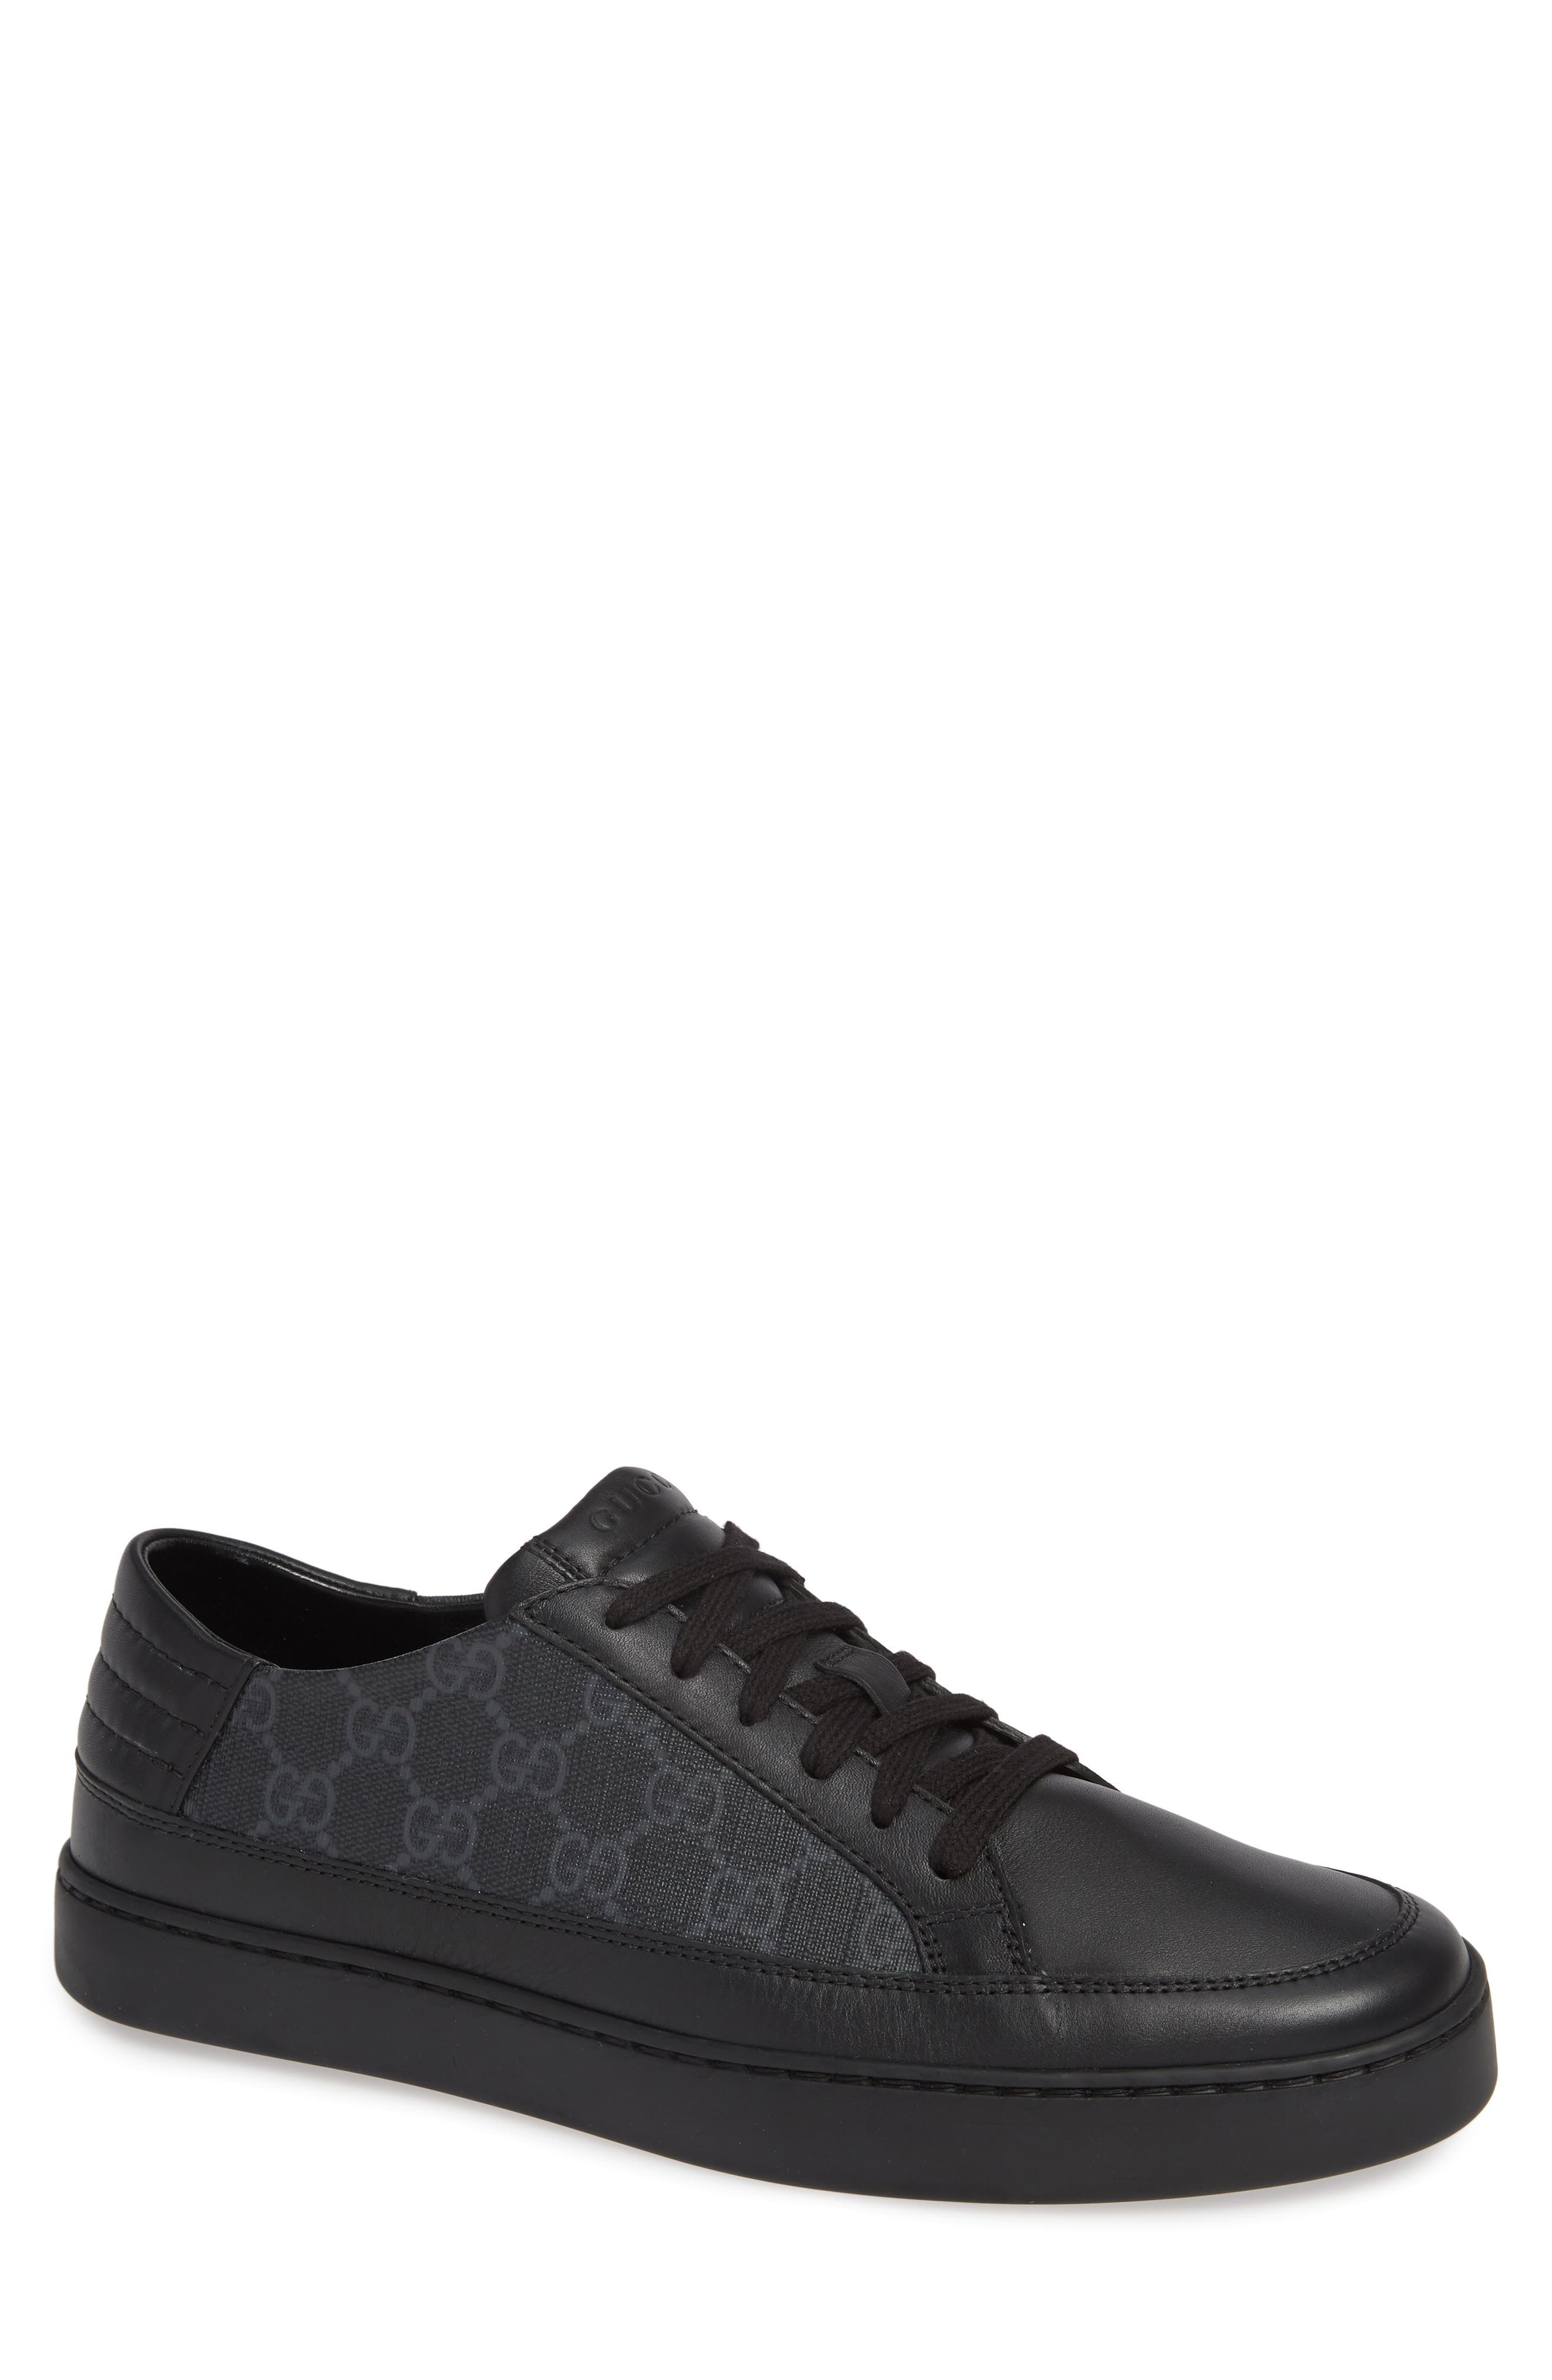 GUCCI, 'Common' Low-Top Sneaker, Main thumbnail 1, color, NERO/ BLACK